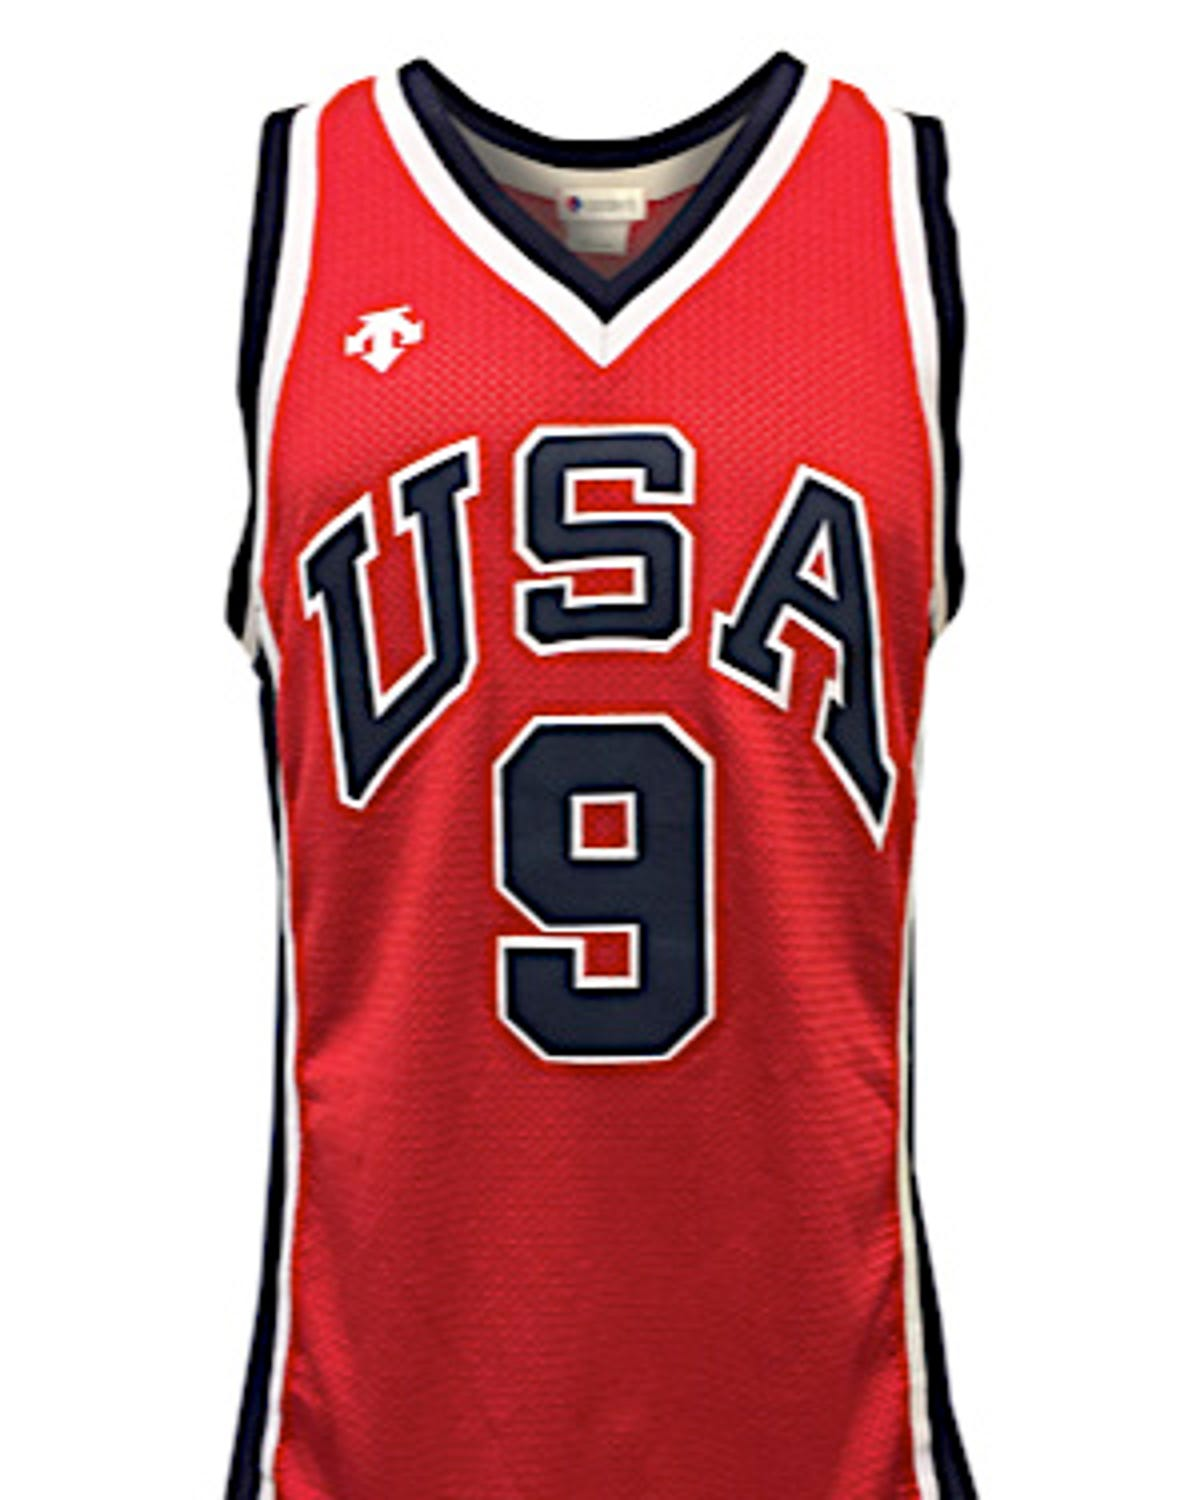 watch f5eb5 185d0 Jersey possibly worn by Michael Jordan sells for $273,904